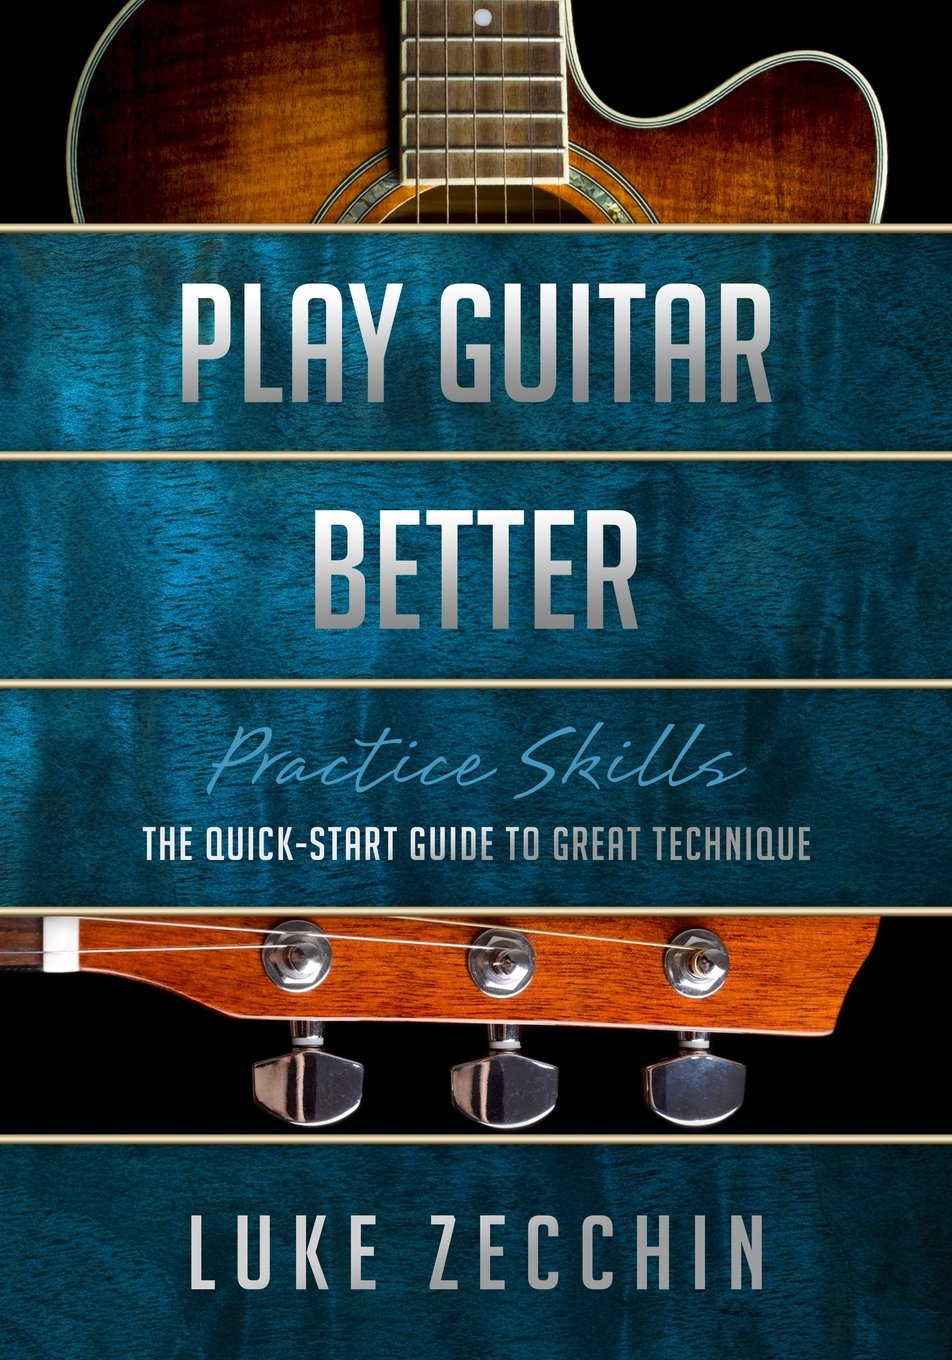 Play Guitar Better: The Quick-Start Guide to Great Technique (Book + Online Bonus Material)